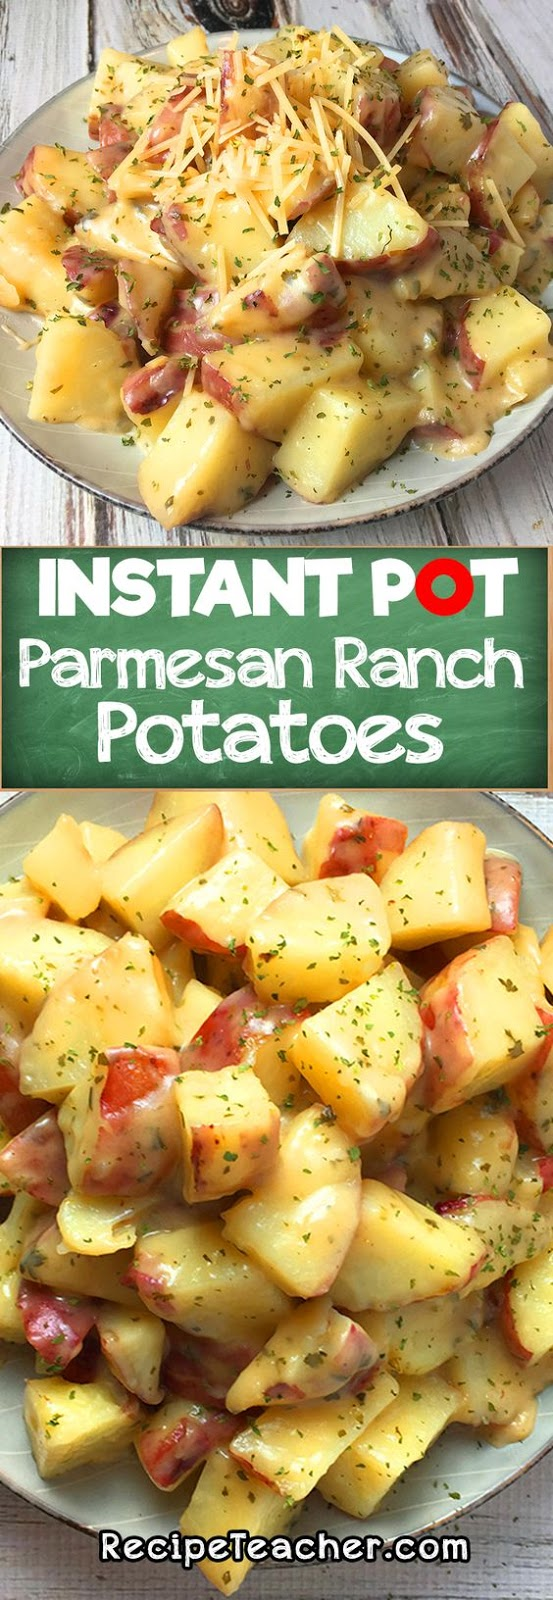 INSTANT POT PARMESAN RANCH POTATOES   #DESSERTS #HEALTHYFOOD #EASYRECIPES #DINNER #LAUCH #DELICIOUS #EASY #HOLIDAYS #RECIPE #SPECIALDIET #WORLDCUISINE #CAKE #APPETIZERS #HEALTHYRECIPES #DRINKS #COOKINGMETHOD #ITALIANRECIPES #MEAT #VEGANRECIPES #COOKIES #PASTA #FRUIT #SALAD #SOUPAPPETIZERS #NONALCOHOLICDRINKS #MEALPLANNING #VEGETABLES #SOUP #PASTRY #CHOCOLATE #DAIRY #ALCOHOLICDRINKS #BULGURSALAD #BAKING #SNACKS #BEEFRECIPES #MEATAPPETIZERS #MEXICANRECIPES #BREAD #ASIANRECIPES #SEAFOODAPPETIZERS #MUFFINS #BREAKFASTANDBRUNCH #CONDIMENTS #CUPCAKES #CHEESE #CHICKENRECIPES #PIE #COFFEE #NOBAKEDESSERTS #HEALTHYSNACKS #SEAFOOD #GRAIN #LUNCHESDINNERS #MEXICAN #QUICKBREAD #LIQUOR